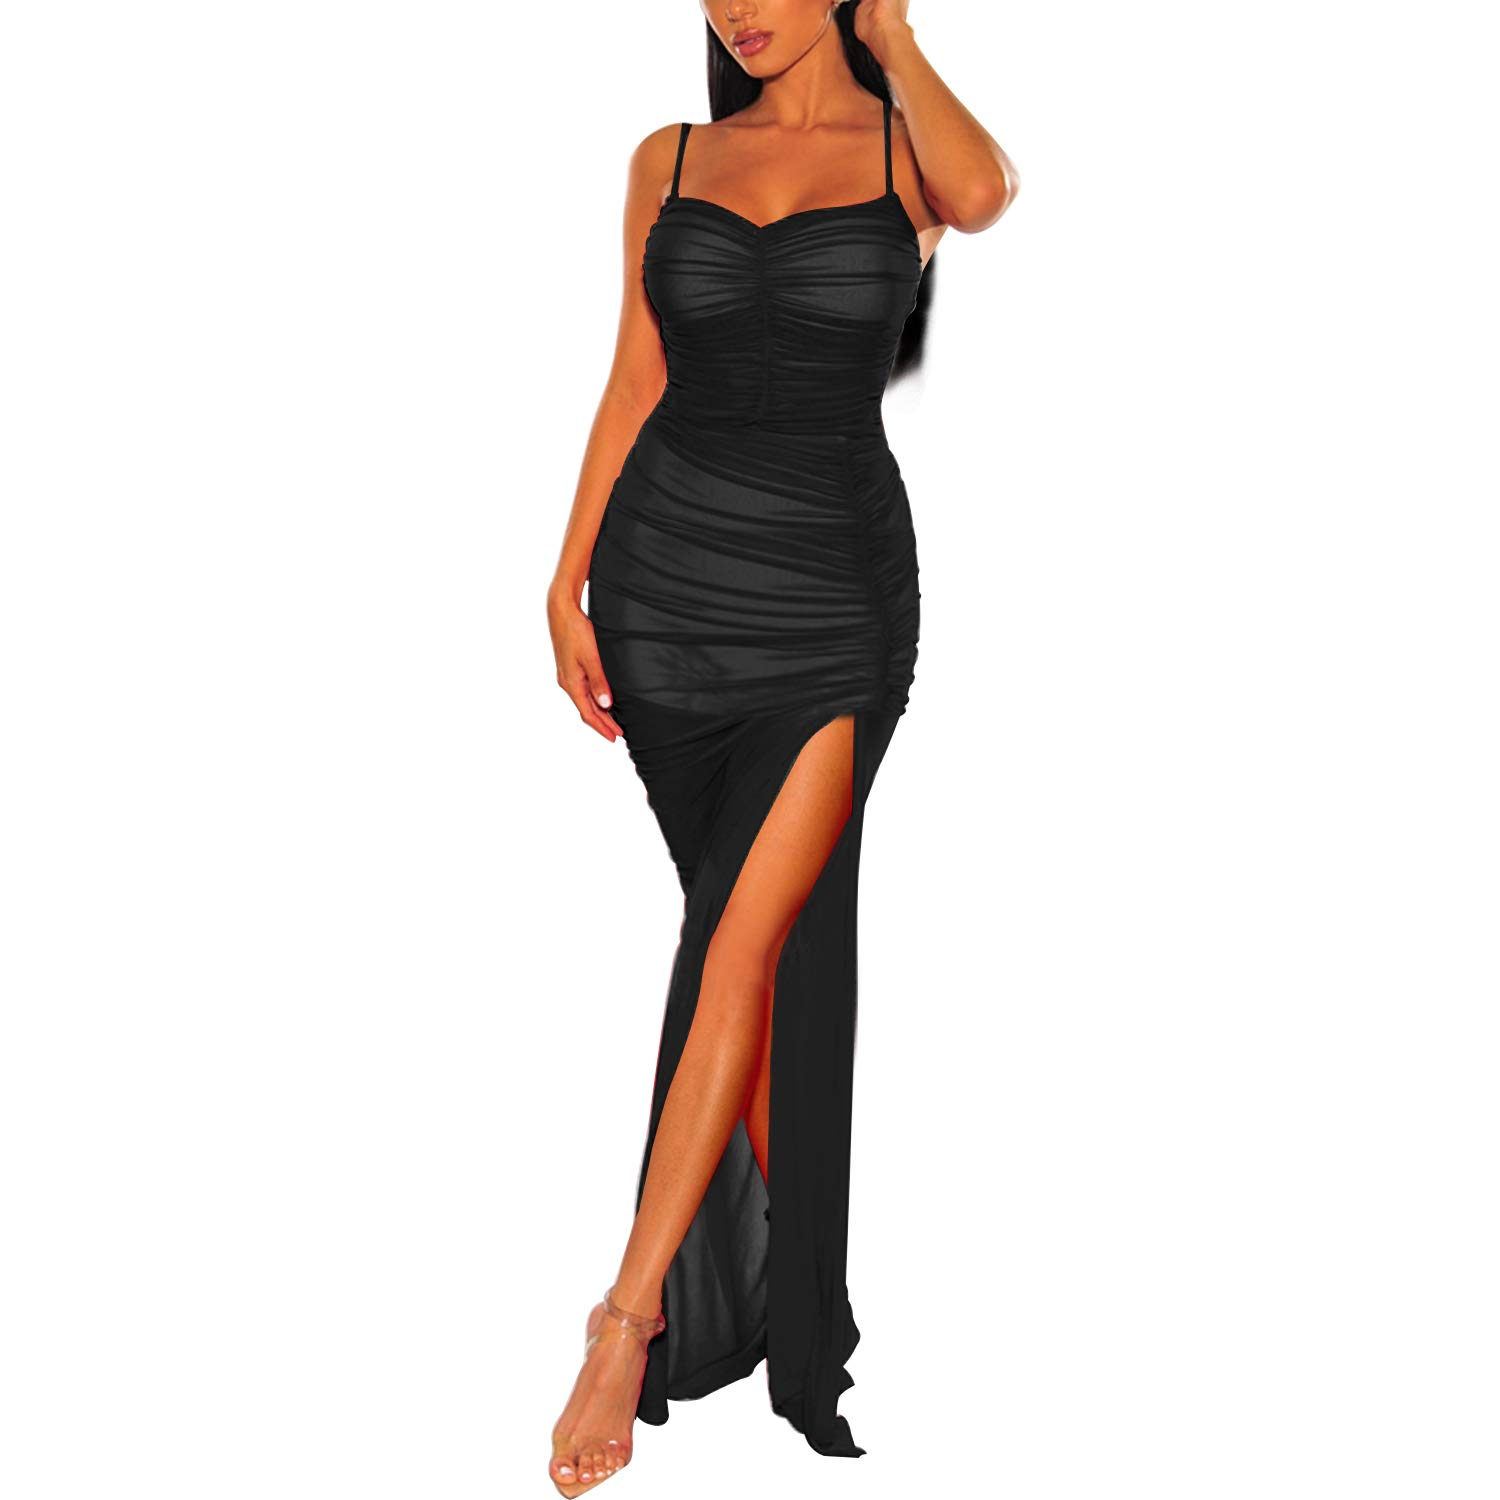 Available at Amazon: Cosics Long Cami Dress Ruched Bodycon Solid Black Mesh Dress Spaghetti Strap Maxi Dress with Slit for Cocktail Party